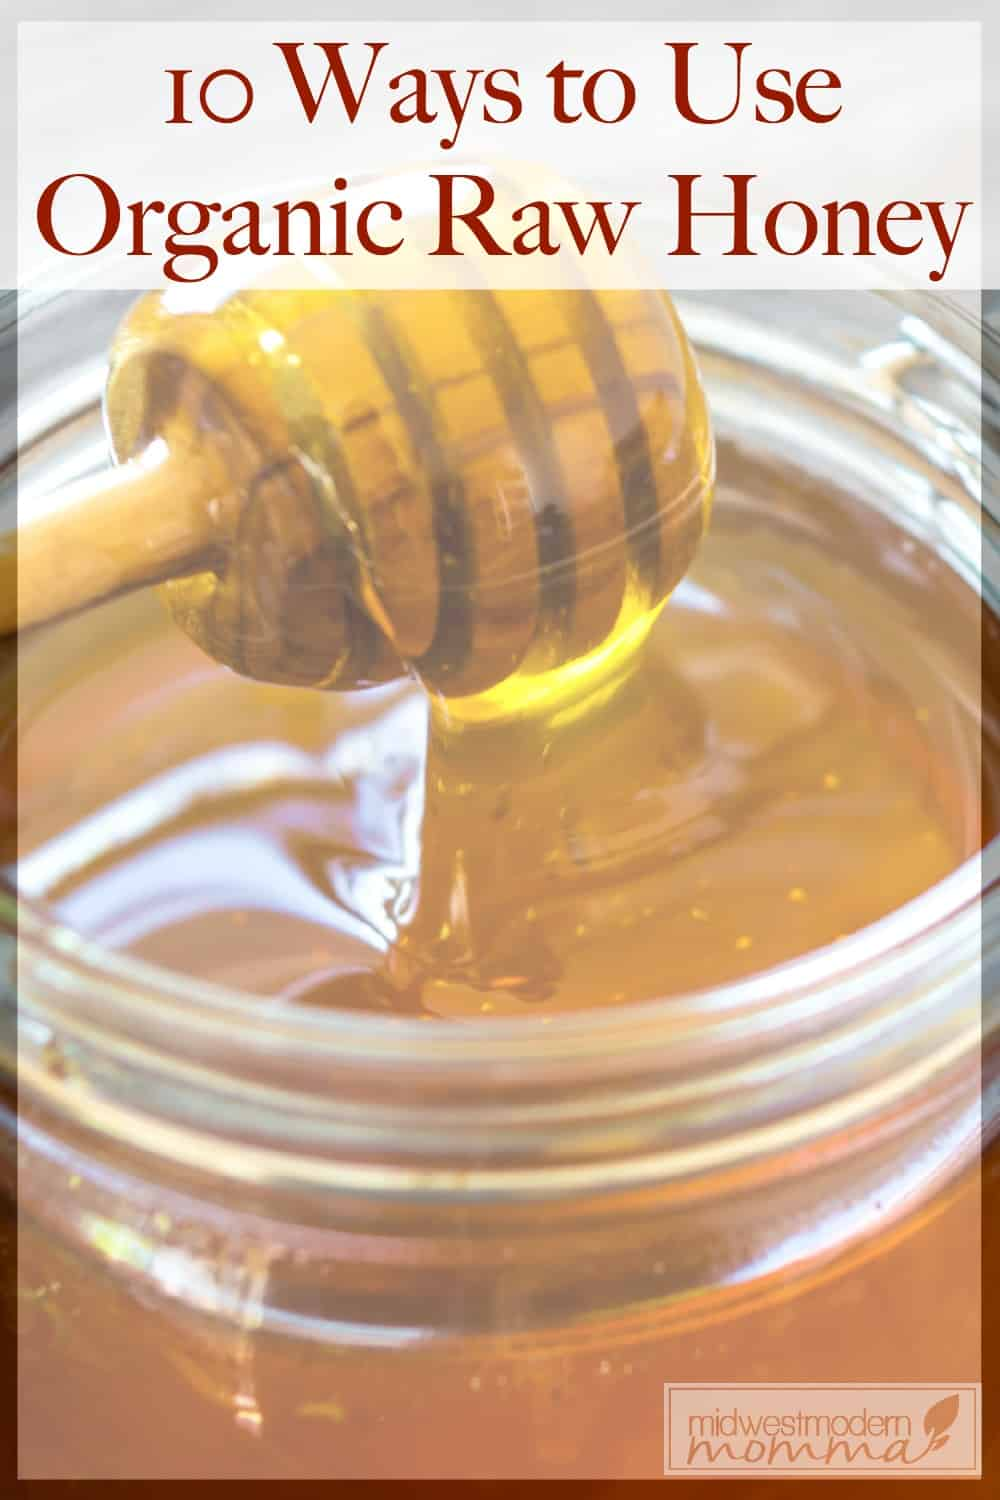 Organic Raw Honey is a great item for your pantry! I always make sure I have a jar or two on hand! Check out these Top 10 Ways To Use Organic Raw Honey In Recipes for some tips on how to use honey in the kitchen!